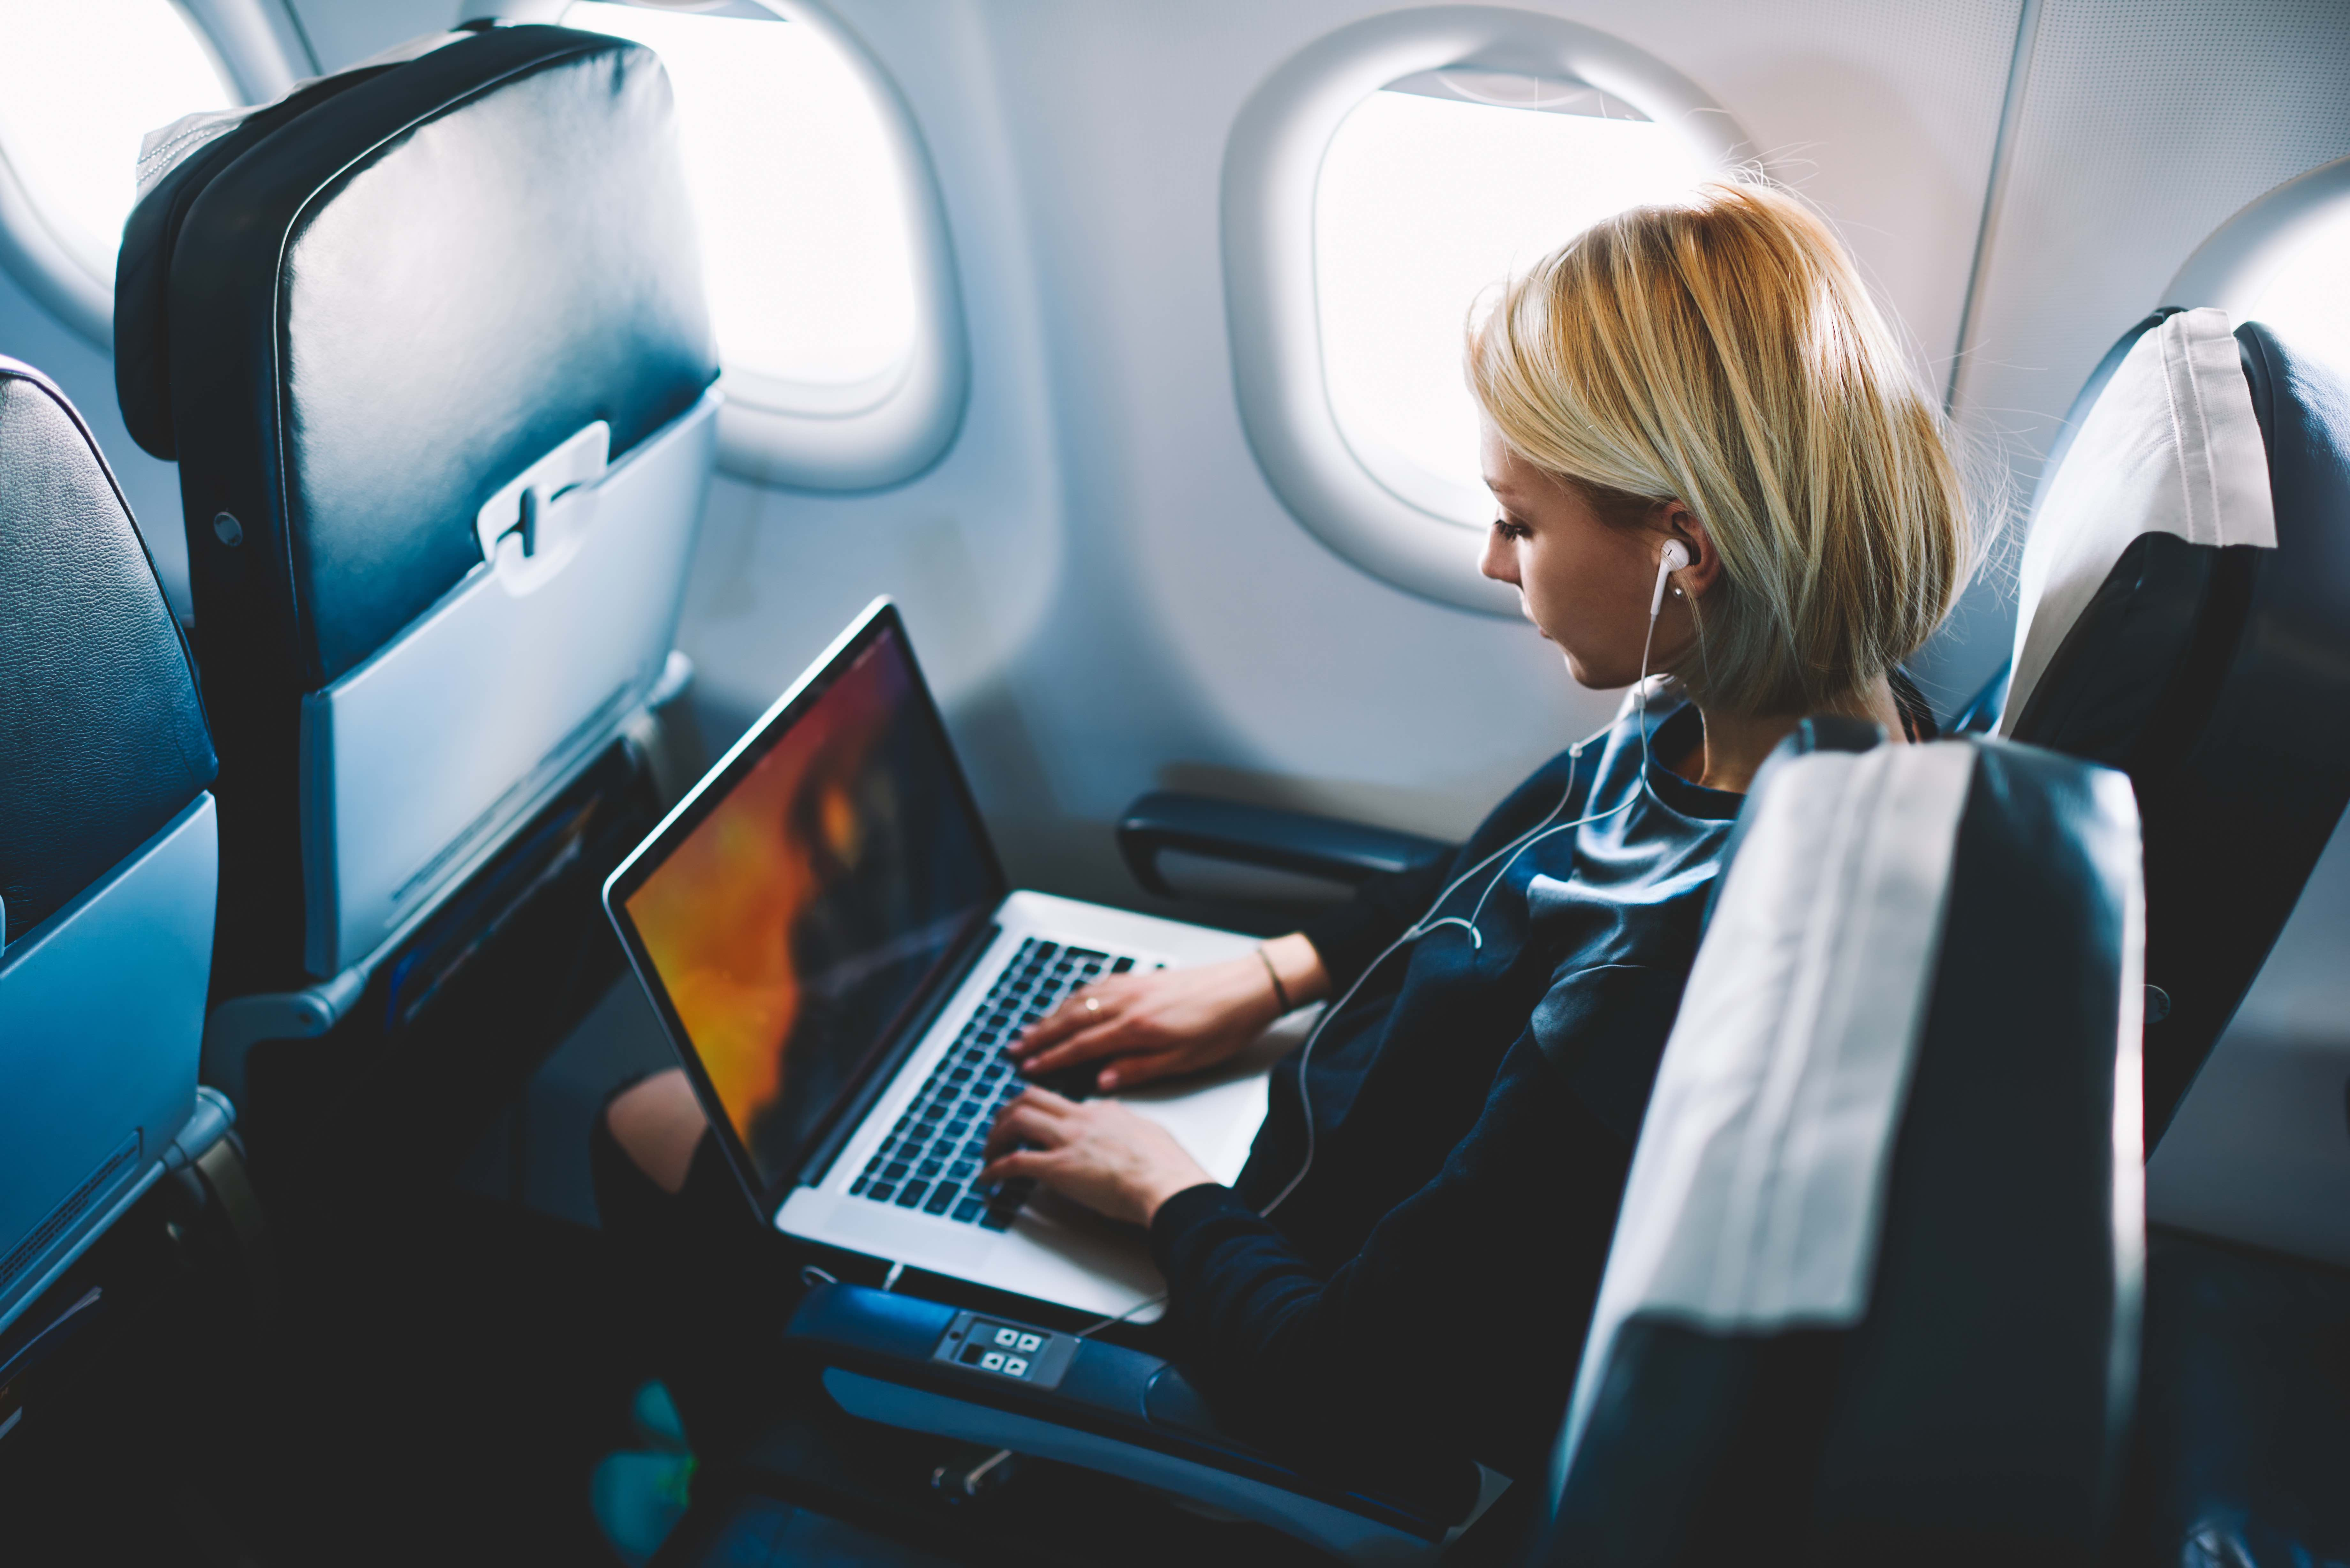 aircraft in-flight entertainment system